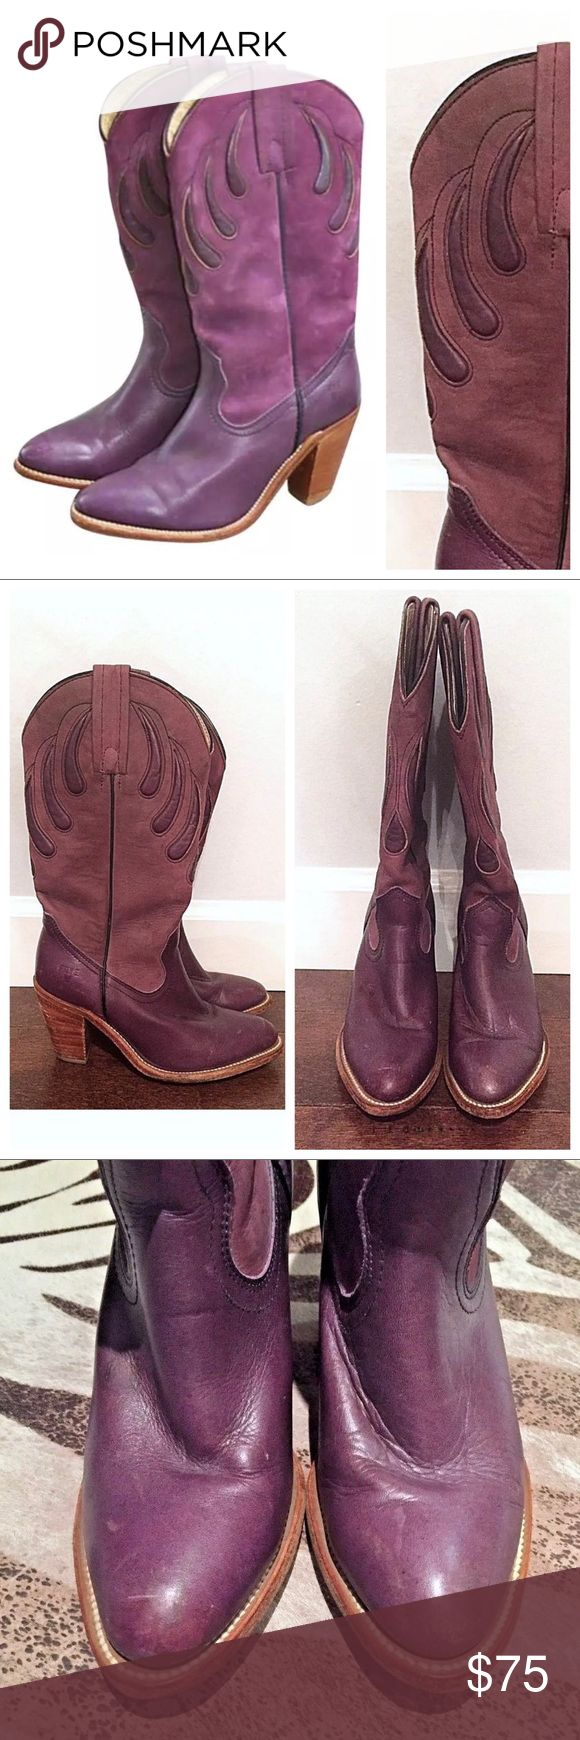 Vintage FRYE Purple Sugar Plum Heeled Cowboy Boots Rare Vintage Frye Boots Purple Leather & Nubuck High Heels   Complete your wardrobe with these vintage purple Frye boots! Soft comfy leather boot, done in a two tone purple. Bear claw western design done on the upper half of each boot. leather cording lines the center of each side of both boots. Leather sole. Three and a half inch stacked wooden heel.  Size: 5.5  Good used condition. Some nicks and scratches. One toe has been touched up with…